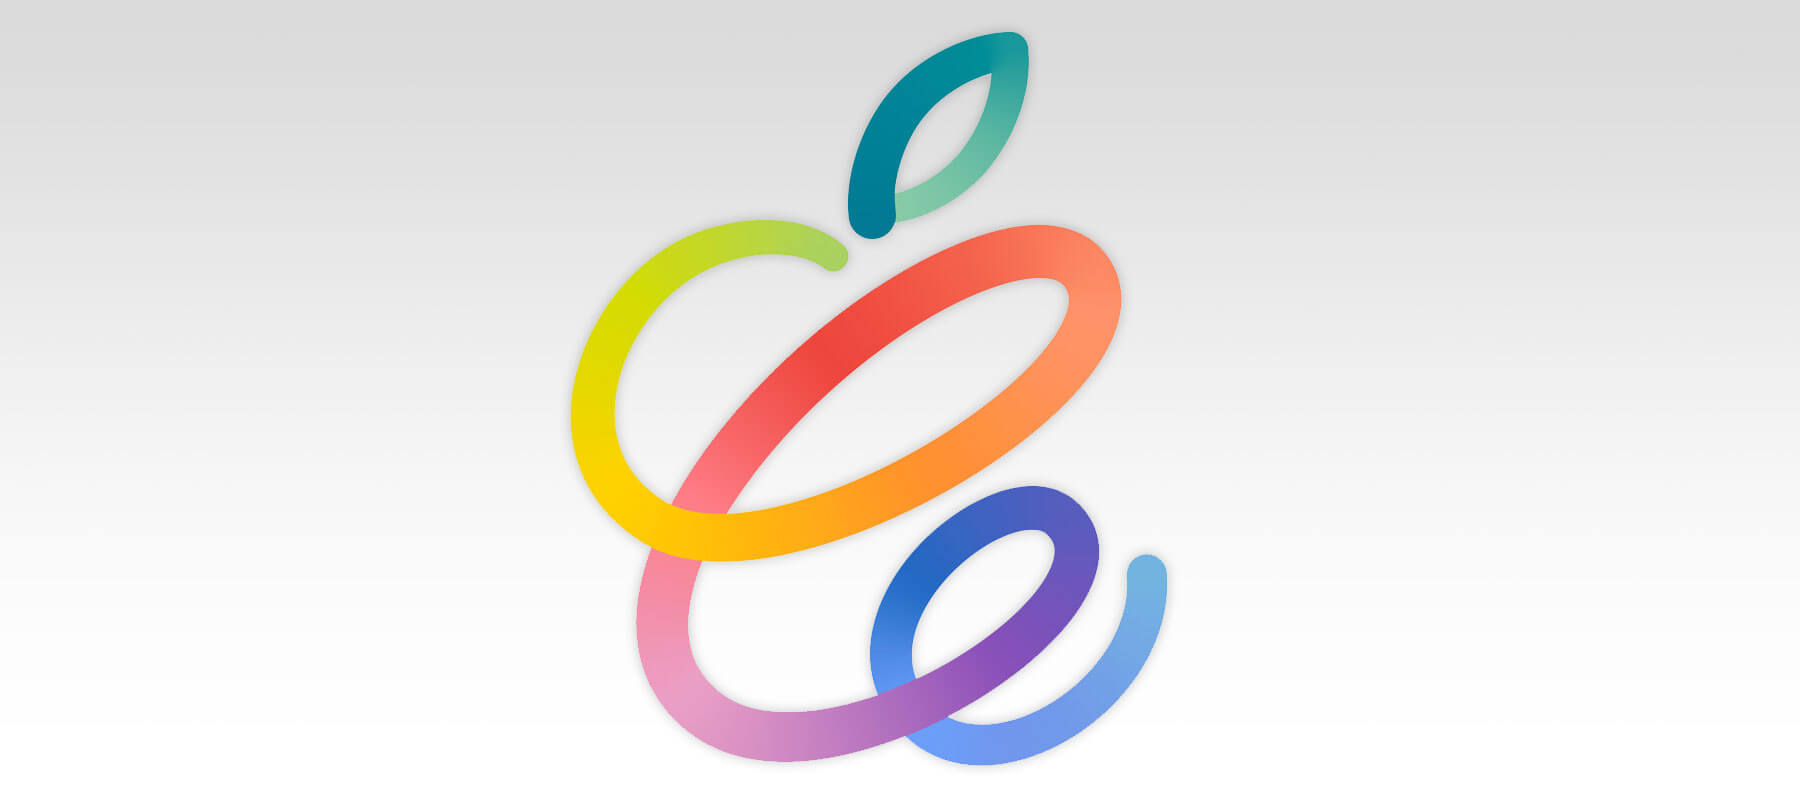 News from Apple's April 2021 Spring Loaded Event